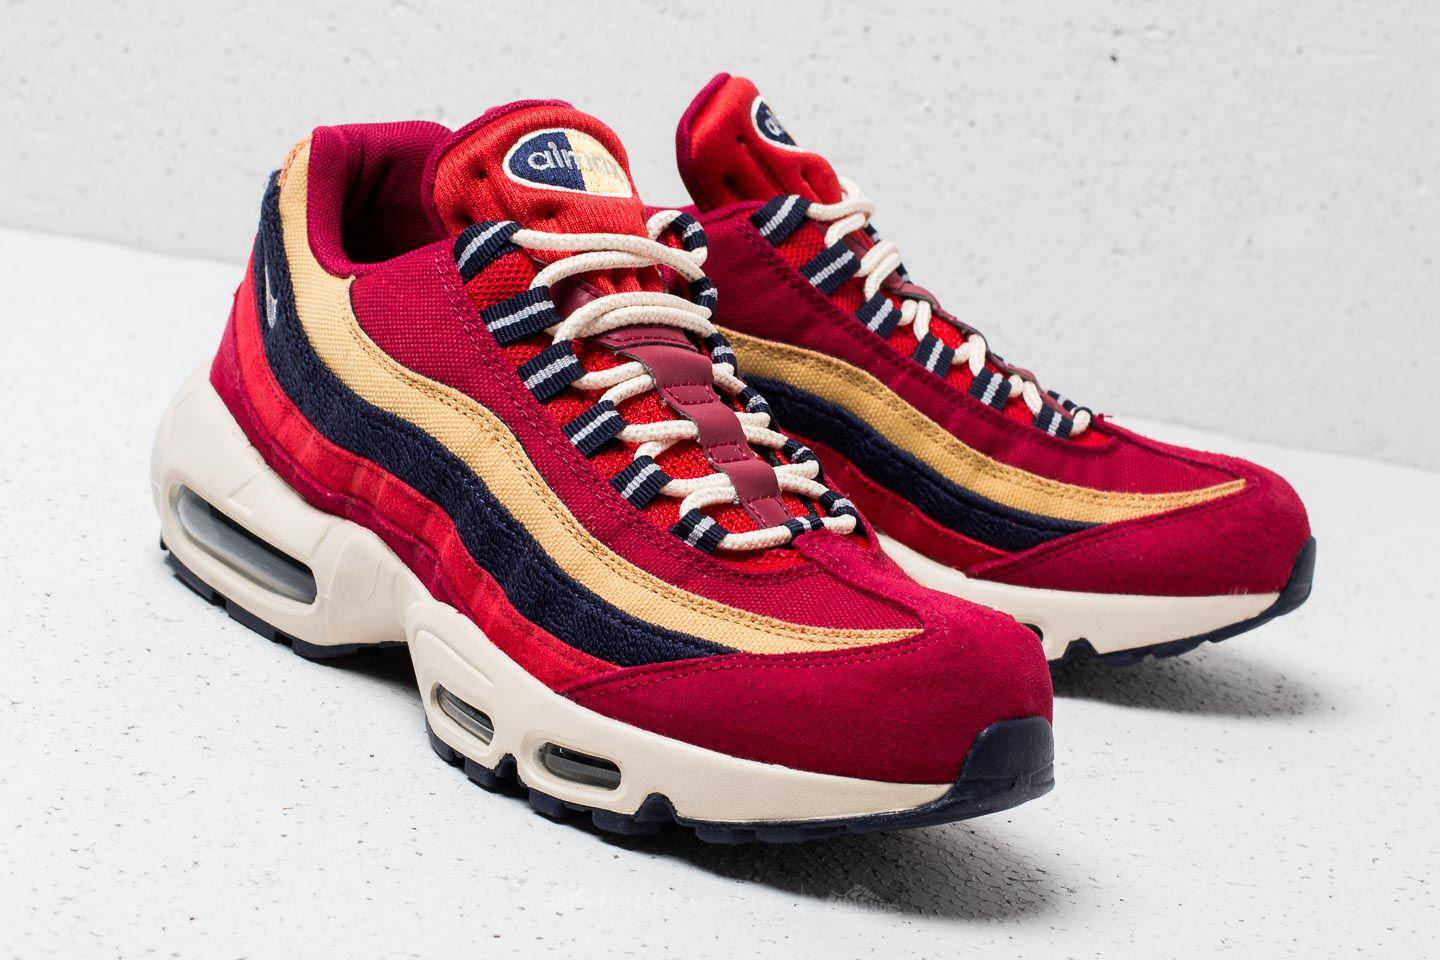 ... where to buy lyst nike air max 95 premium red crush provence purple in  red for 9427613bc